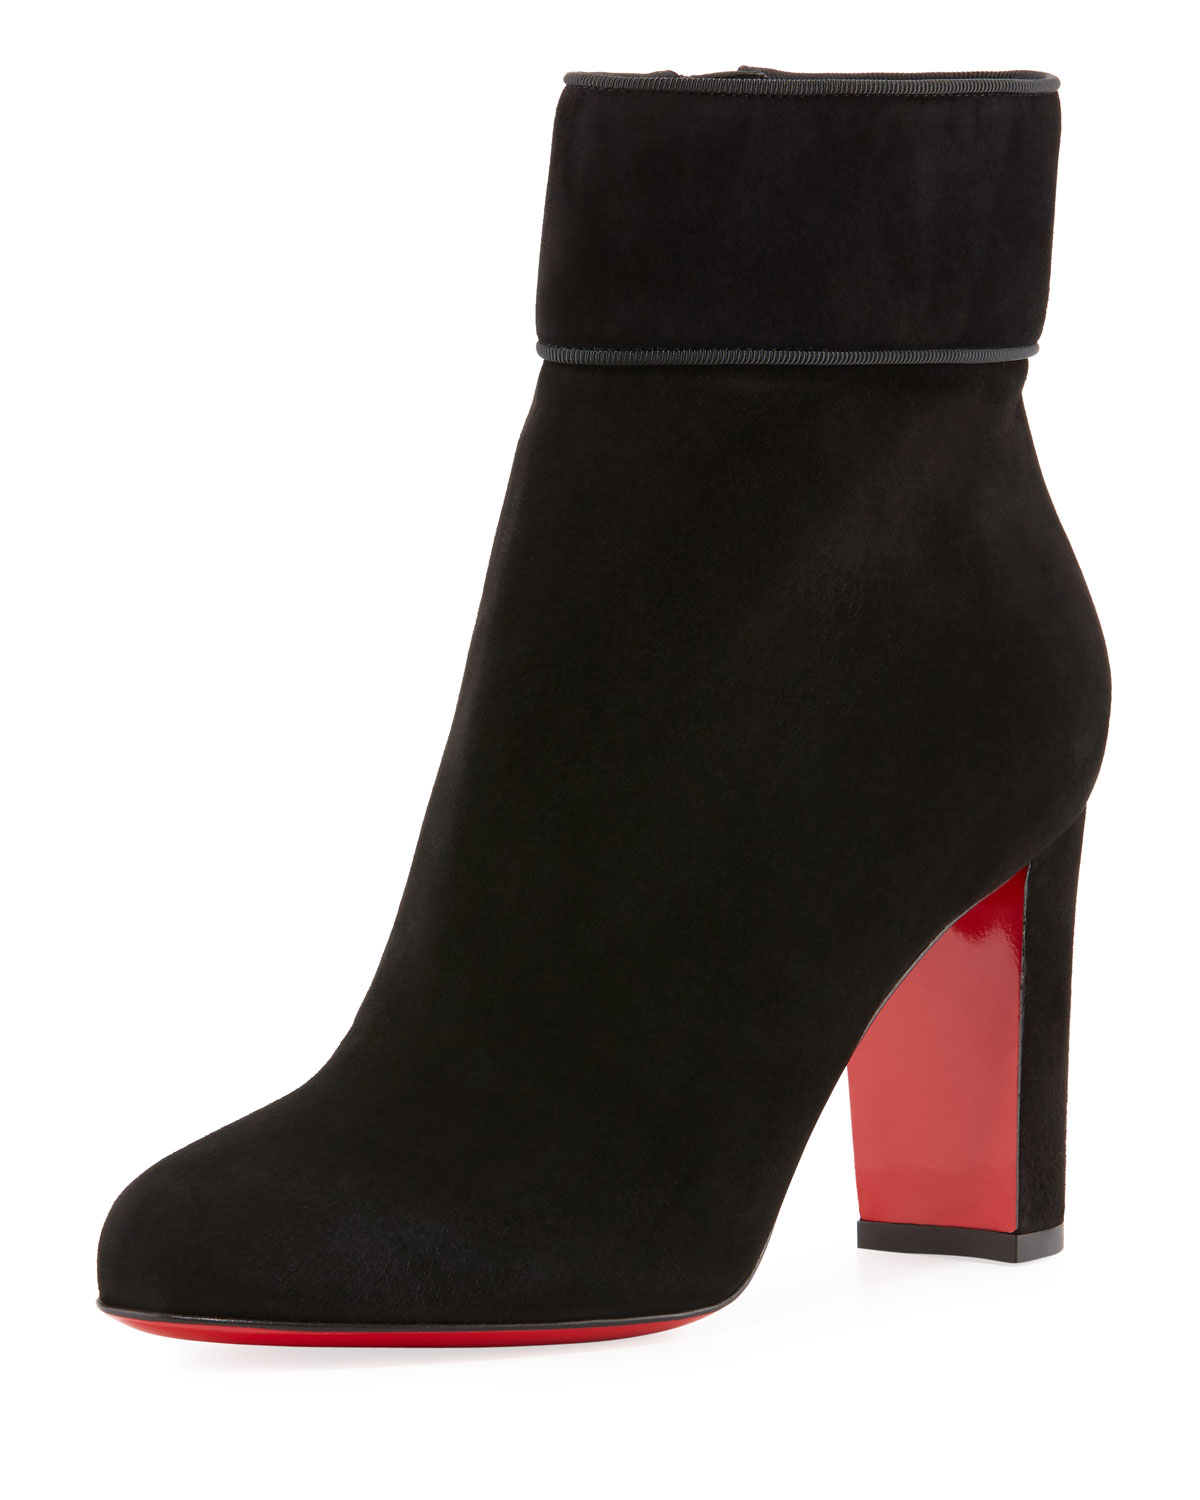 e44db9defadd Christian Louboutin Moulamax Suede 85mm Red Sole Booties